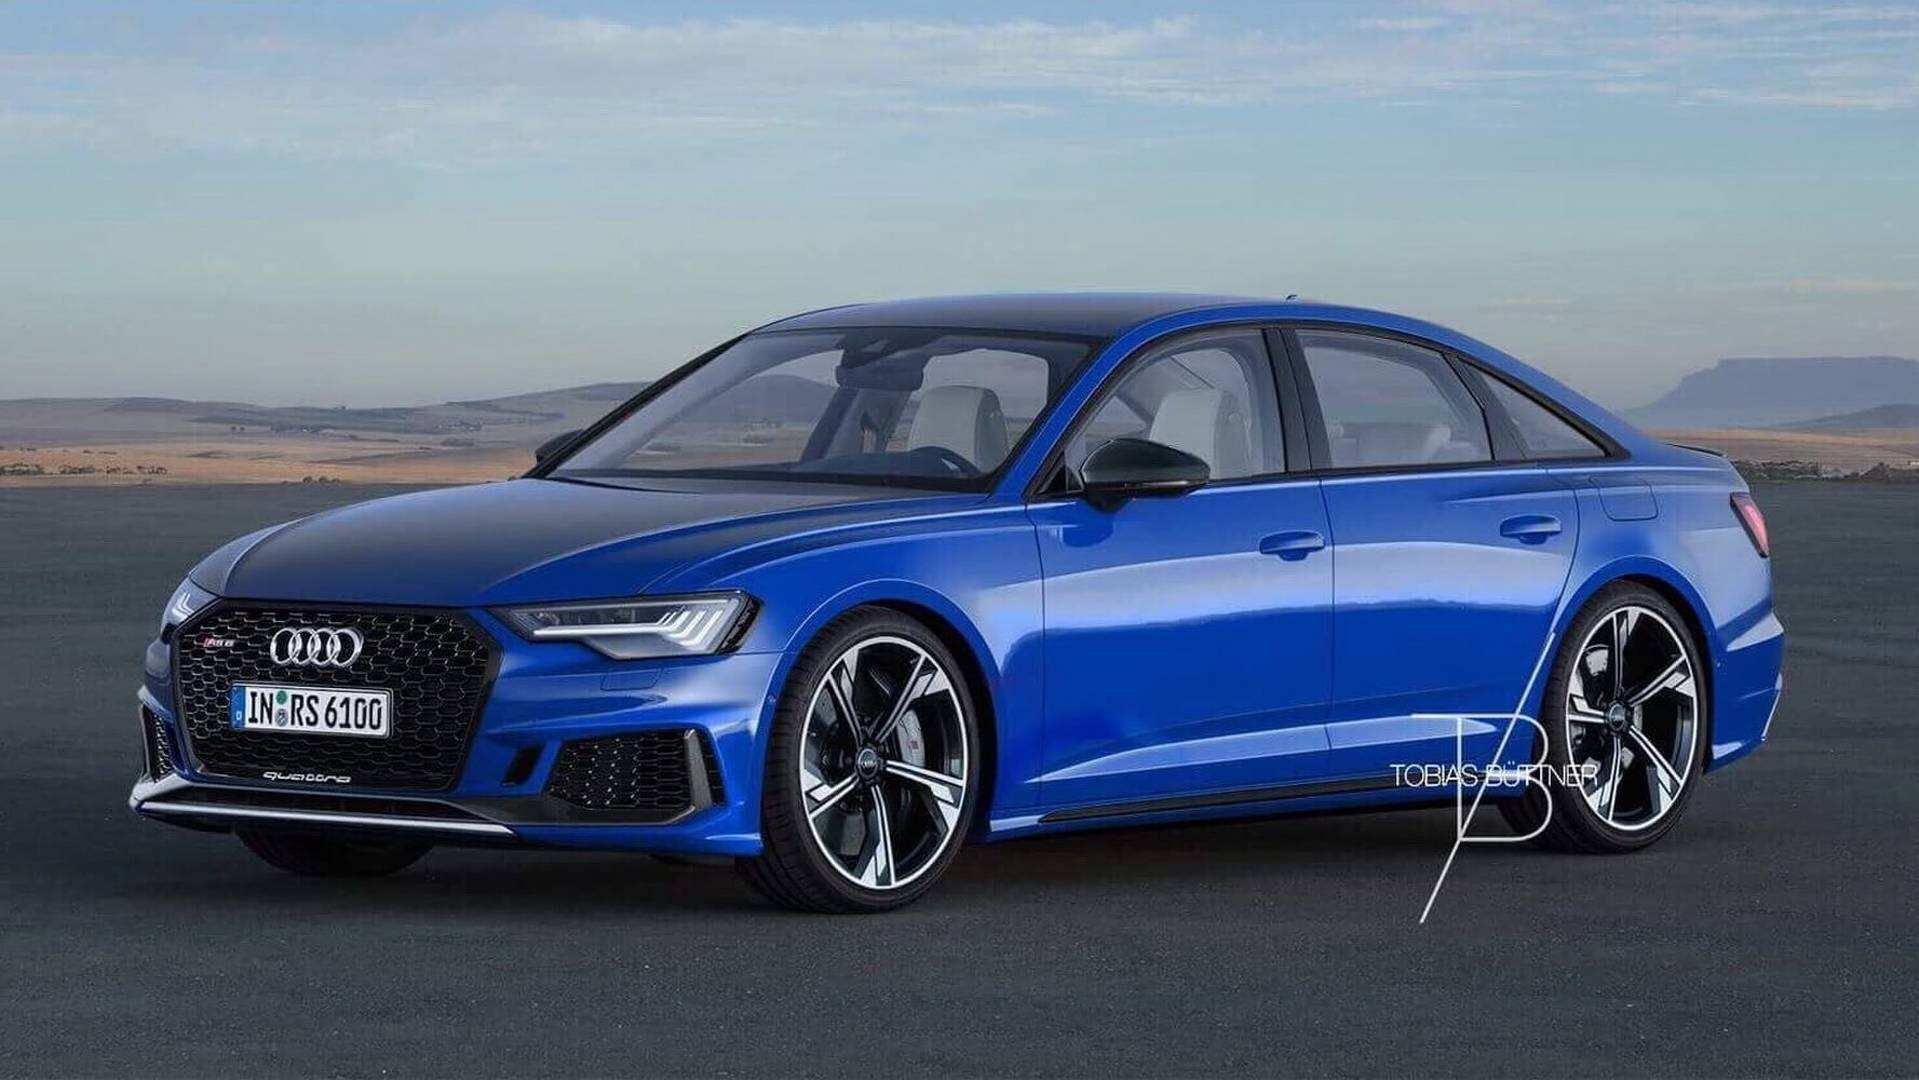 39 Gallery of 2020 Audi Rs6 Rumors by 2020 Audi Rs6